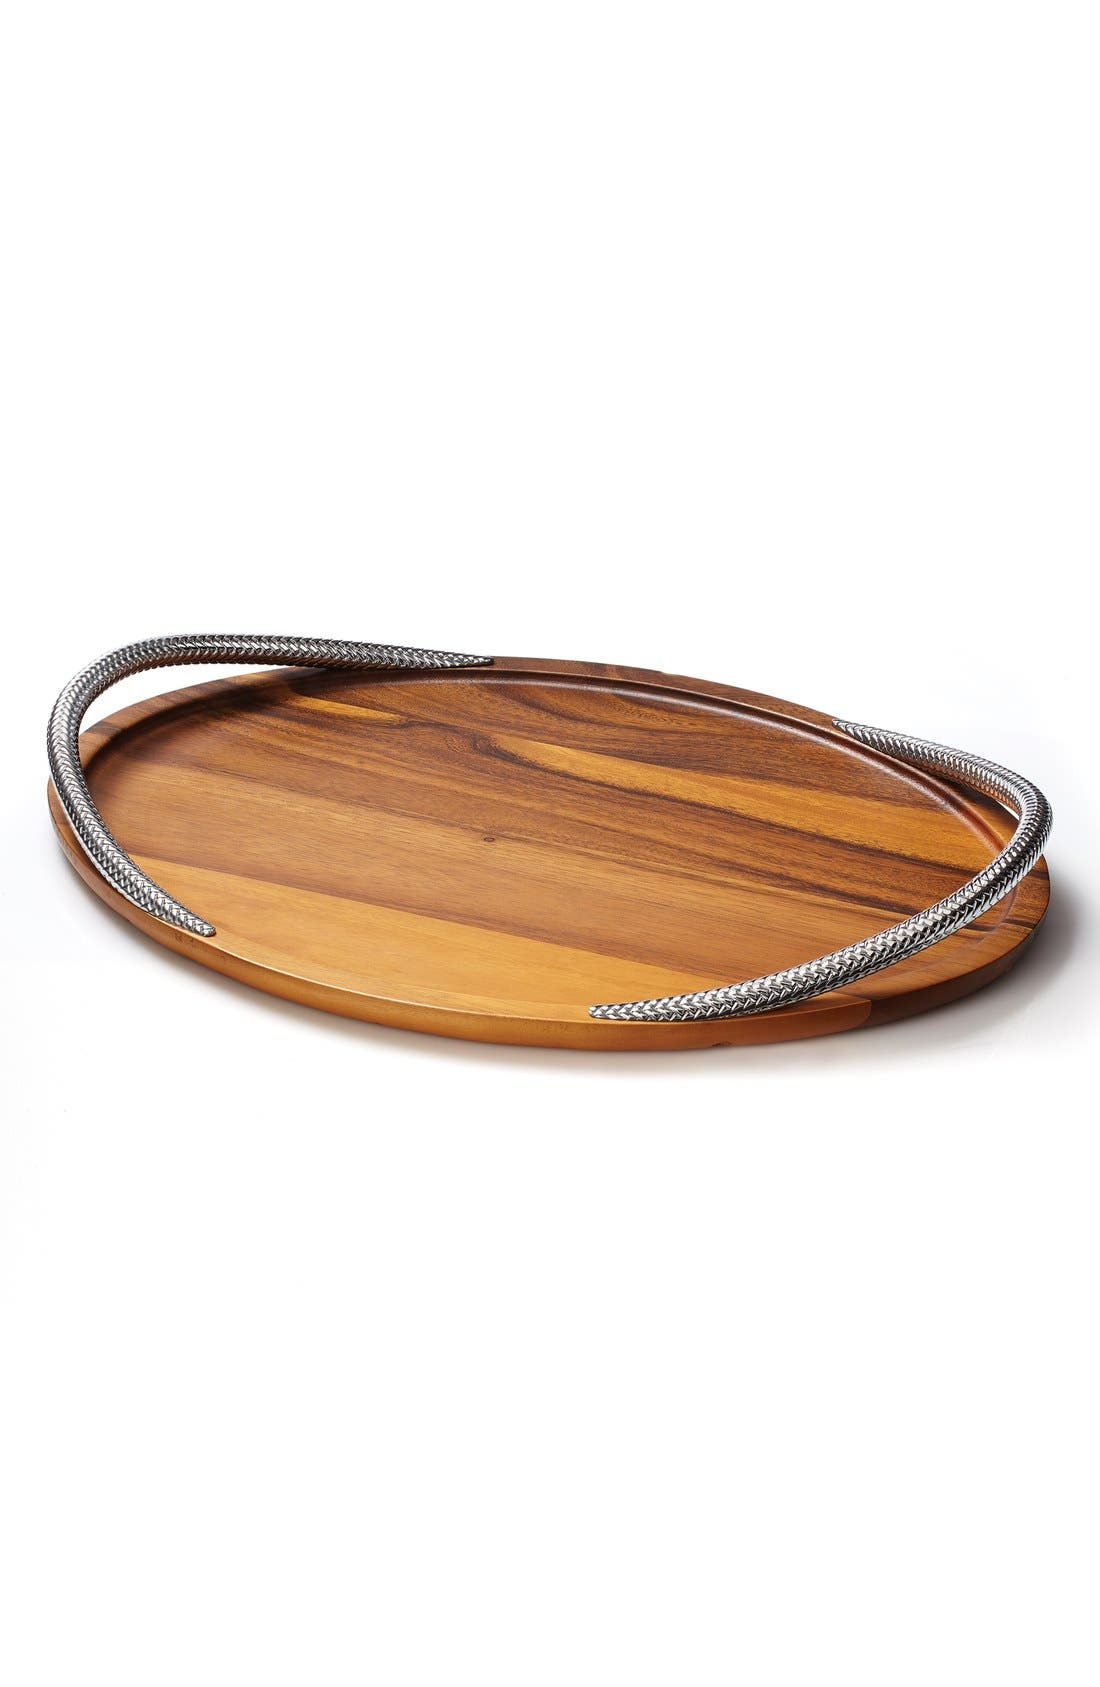 Braid Serving Tray,                         Main,                         color,